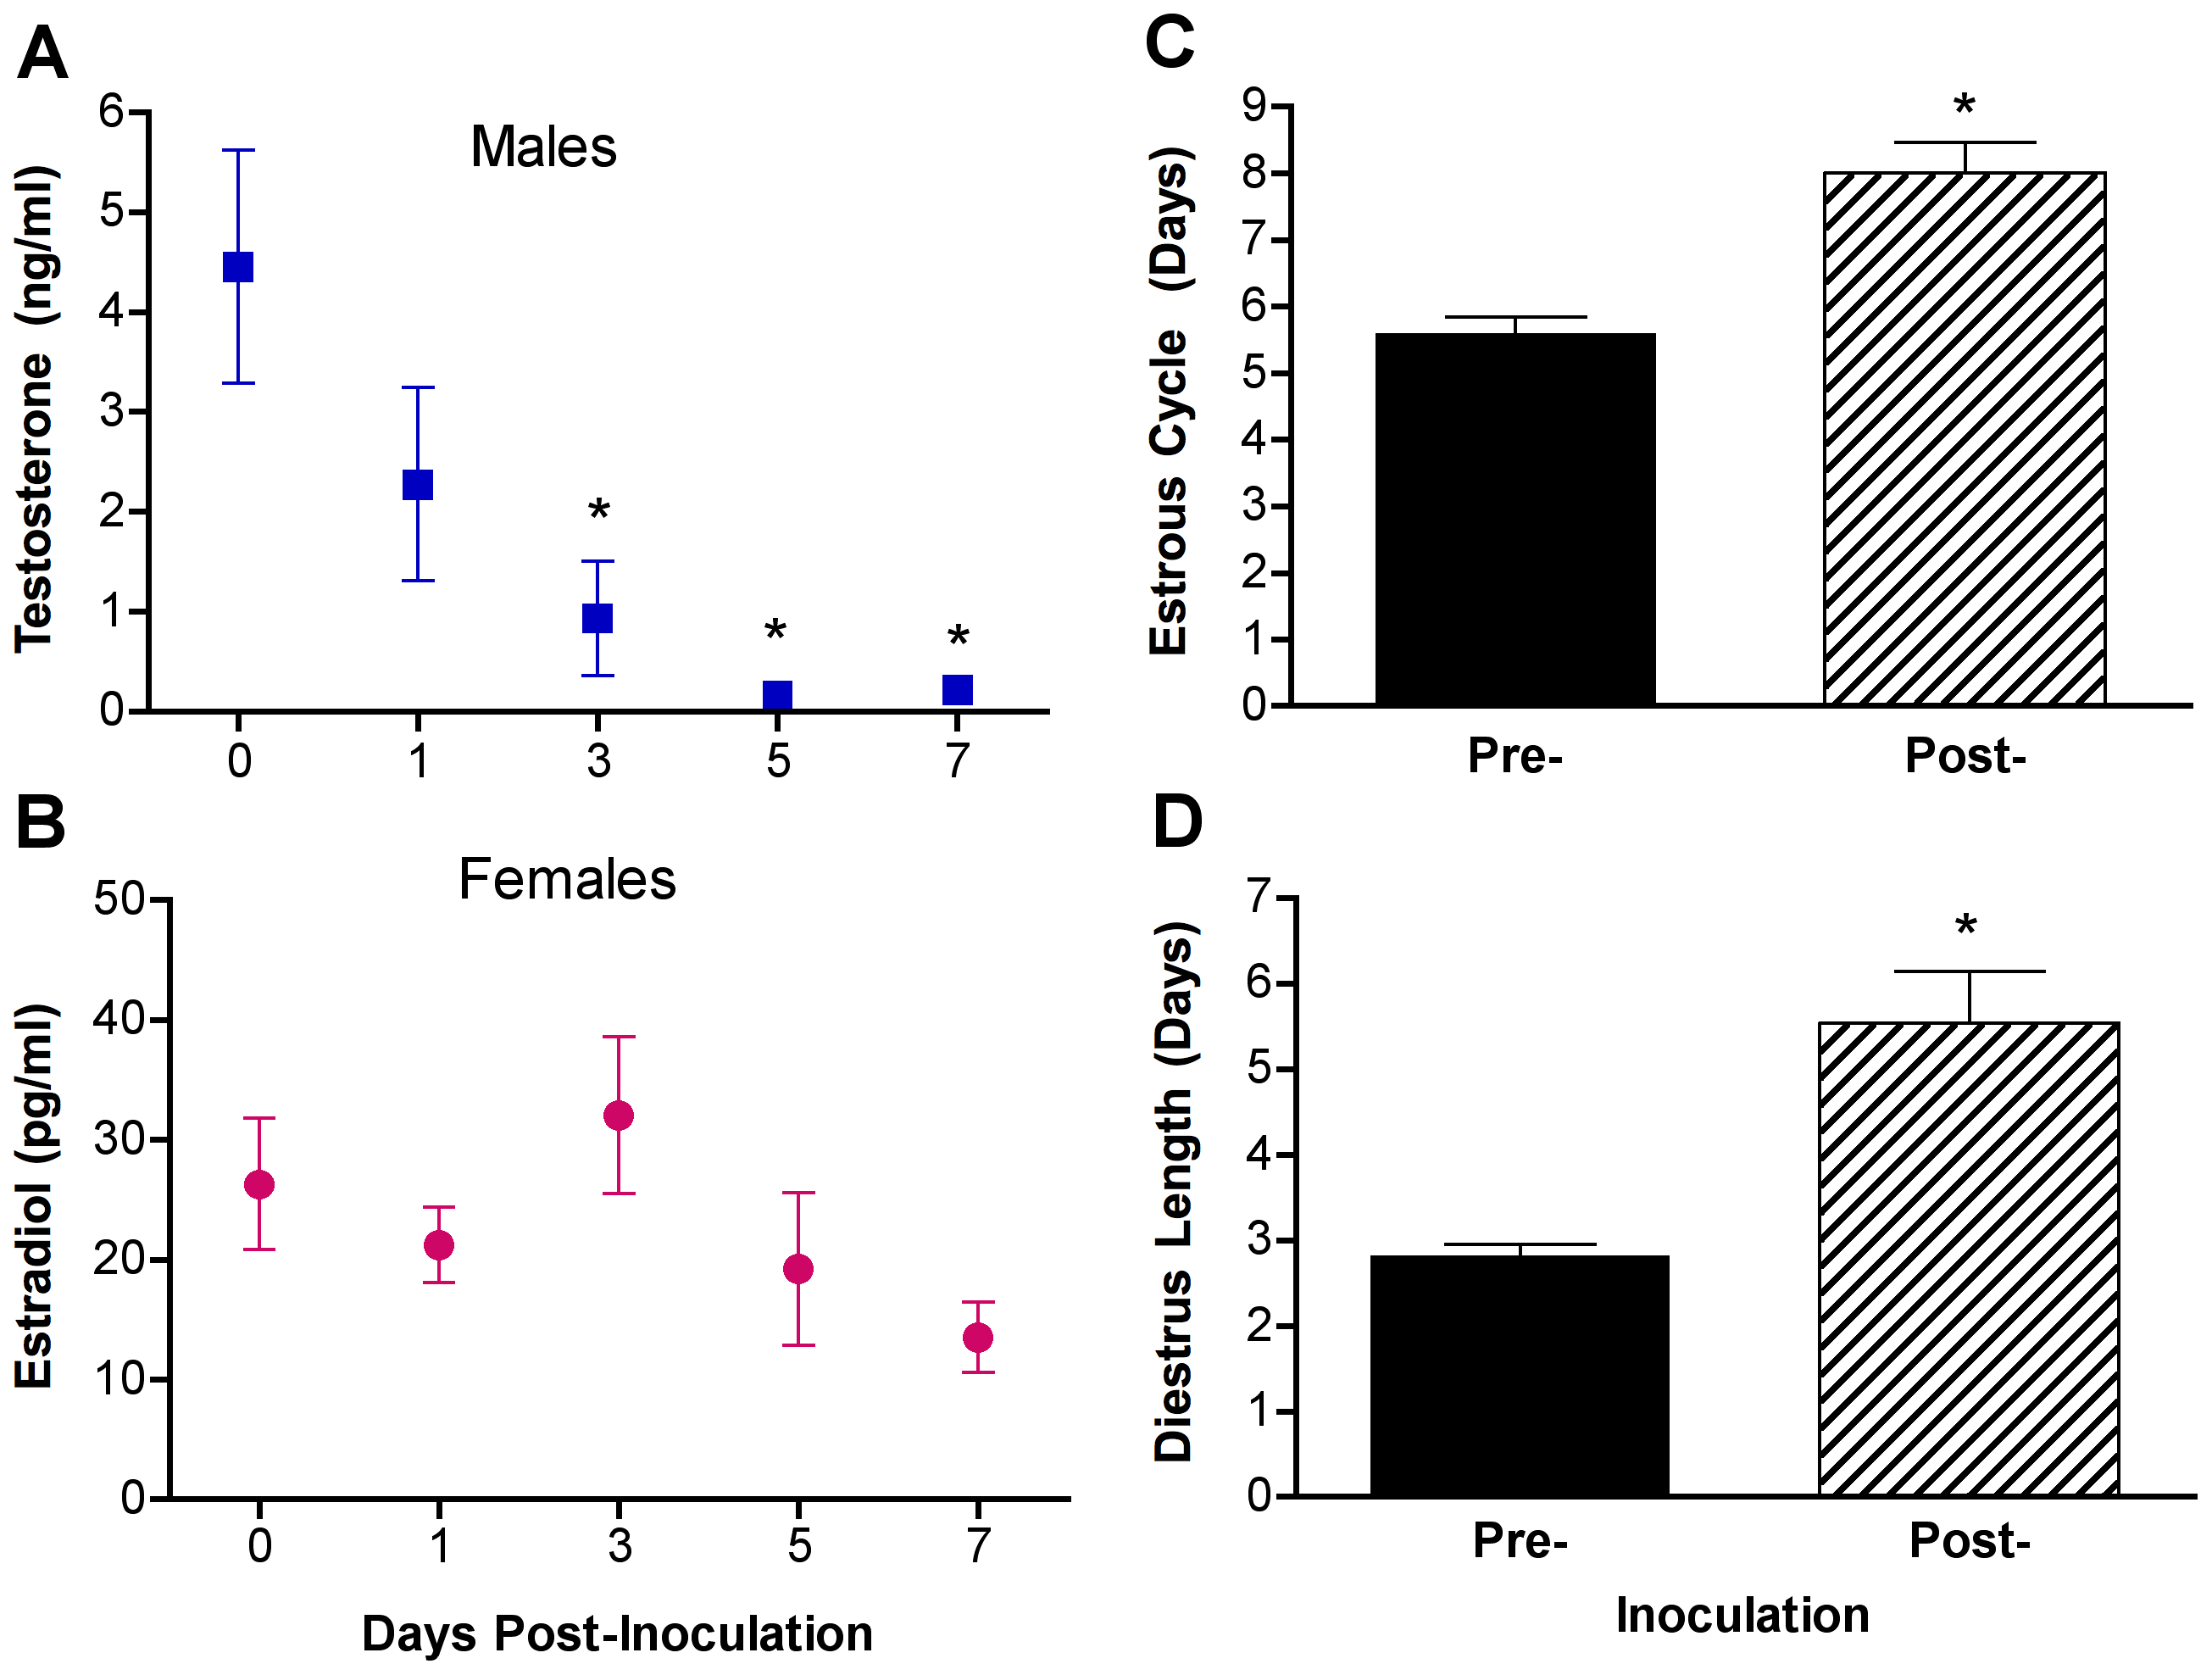 Influenza virus infection alters sex steroid concentrations and reproductive function in males and females.